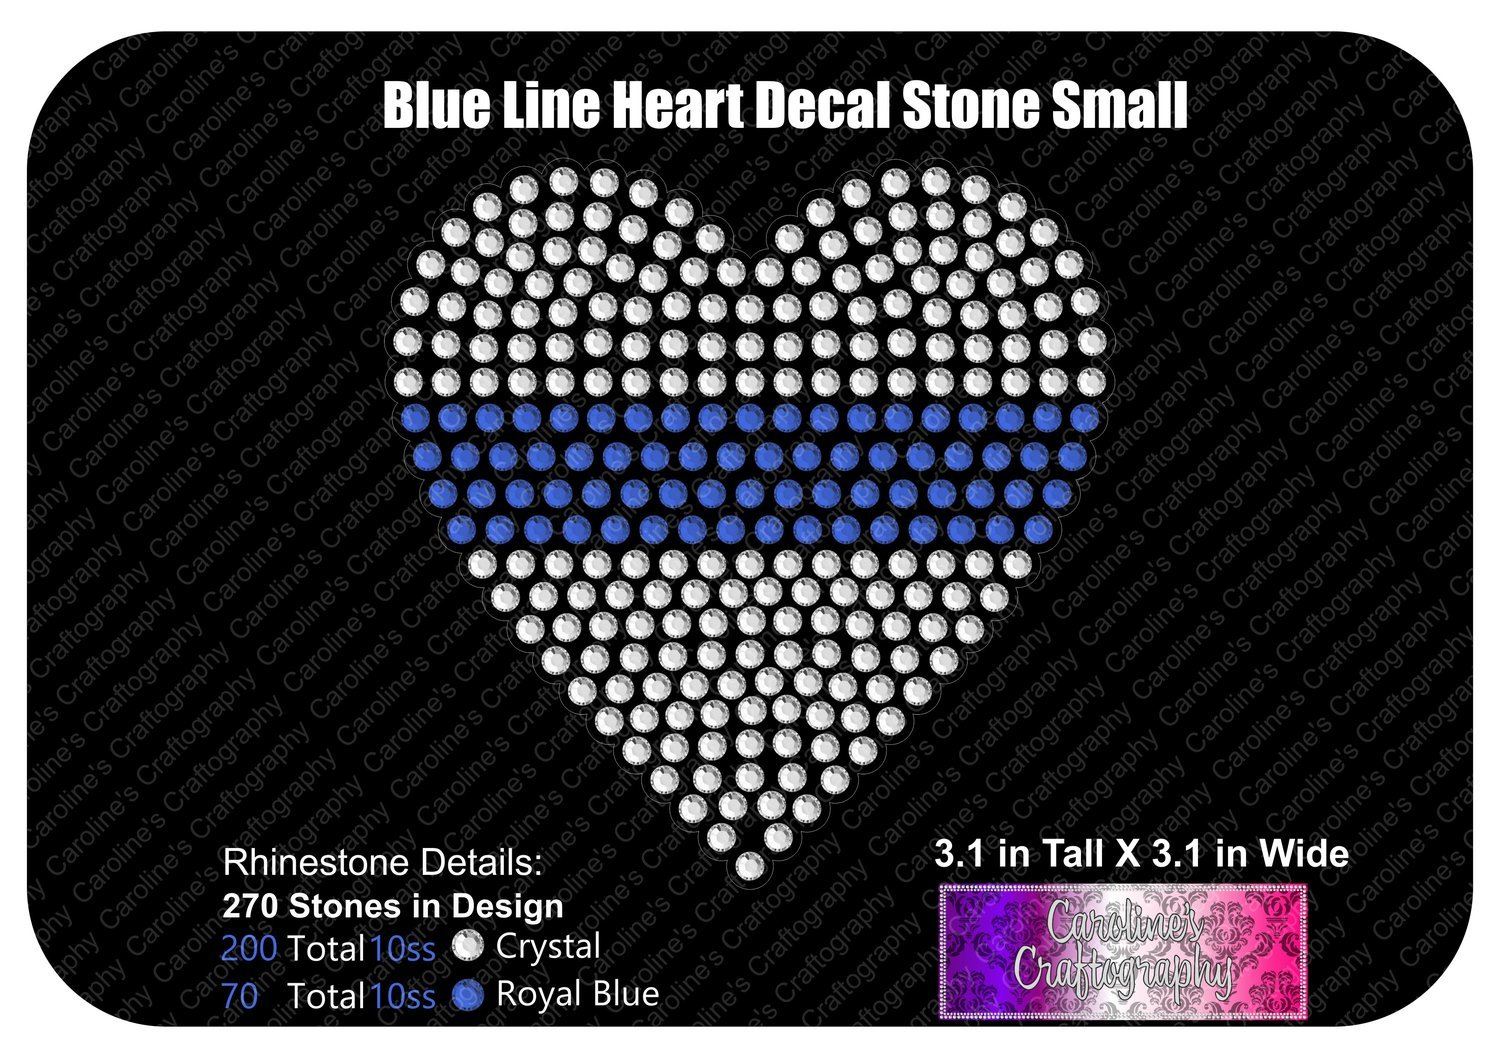 Blue Line Heart Stone Decal Small